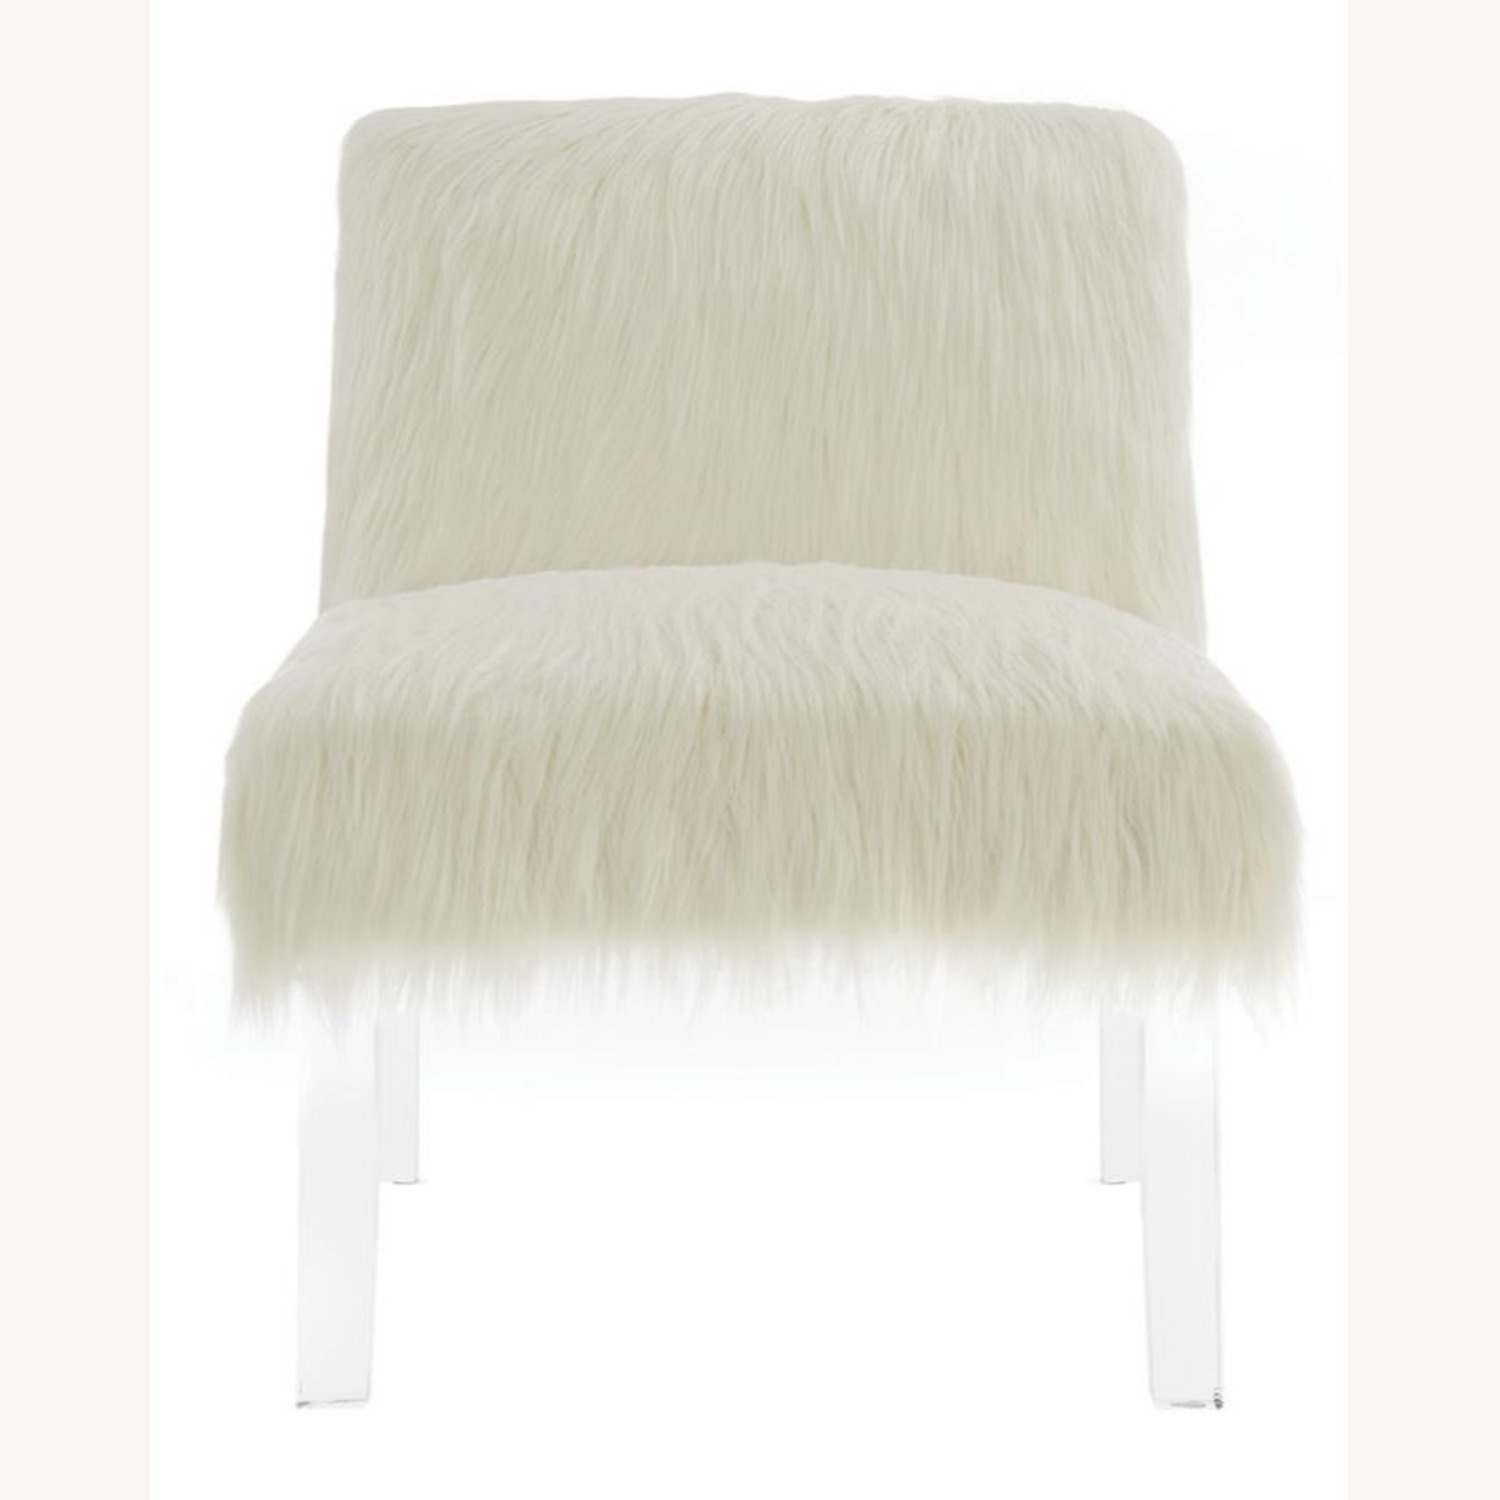 Accent Chair In Glamorous White Faux Sheepskin - image-1